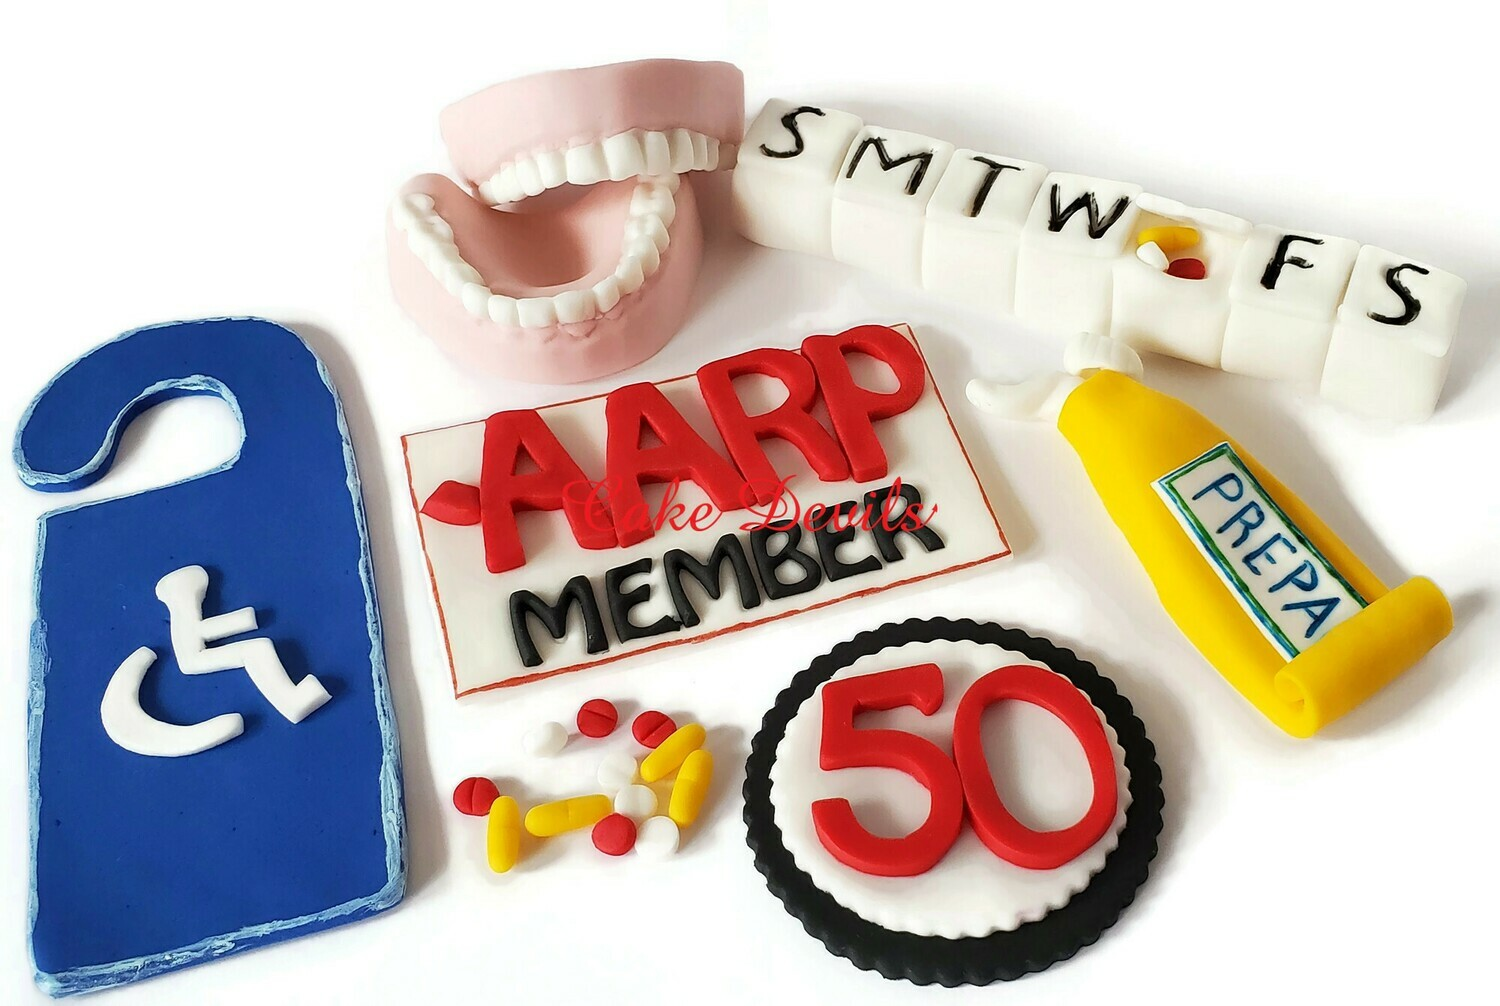 Over the Hill Cake Toppers, Fondant Cake Decoration including Dentures Cake Topper, Pill Case, Handicap Sign, Hemrroid Cream, pills